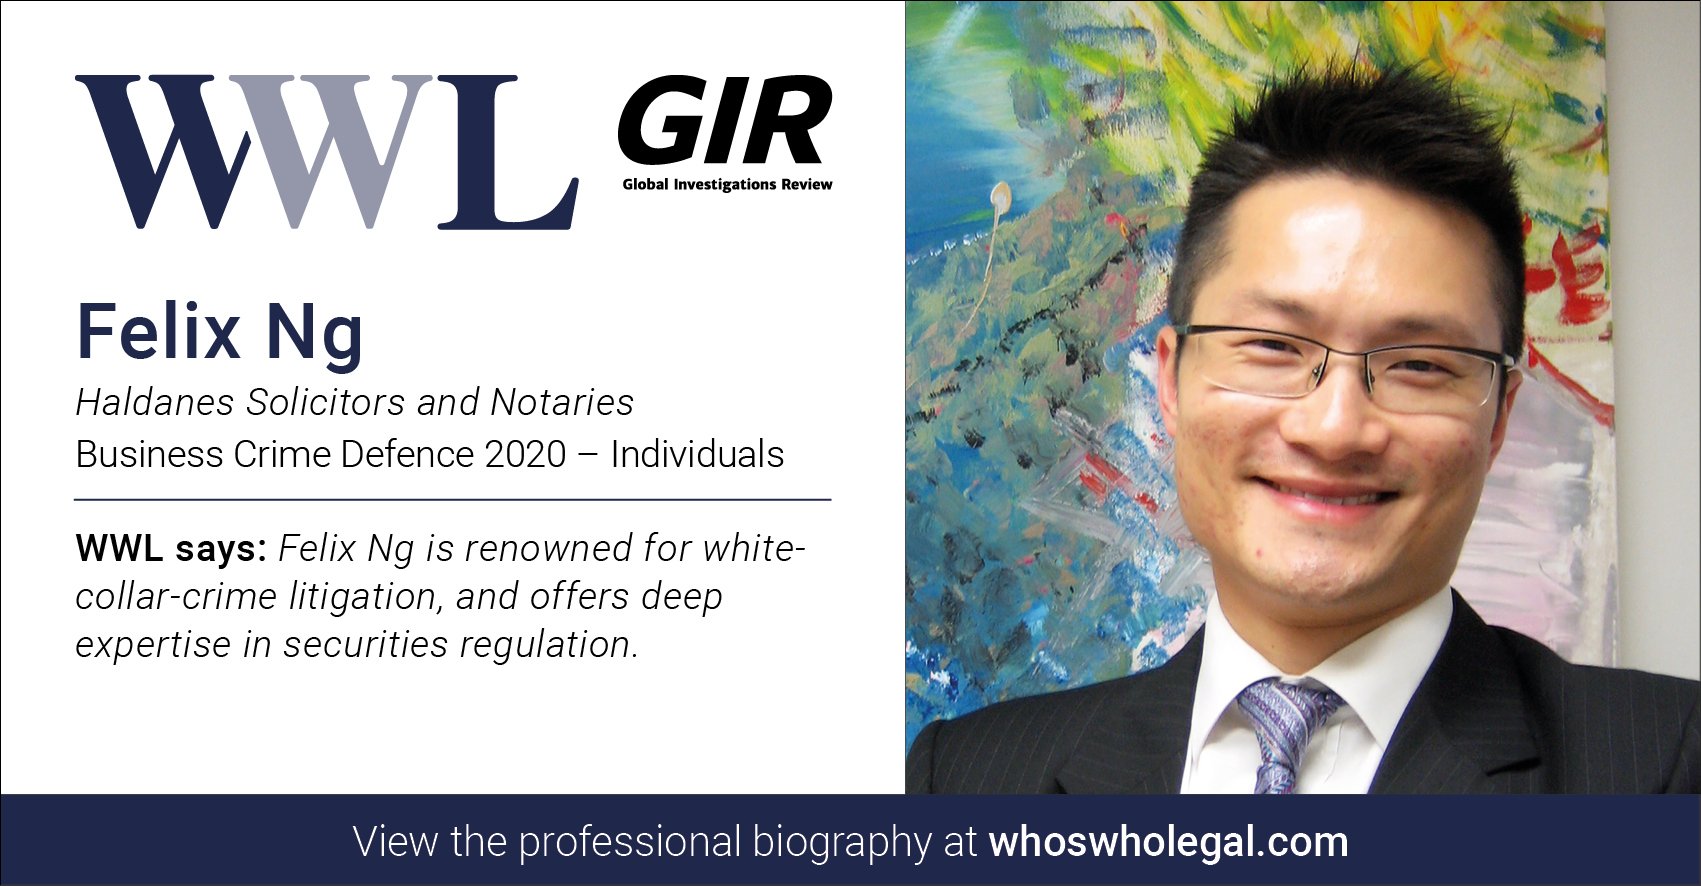 Felix Ng Social Media Card Individuals - Haldanes recognised in Who's Who Legal Business Crime Defence 2020